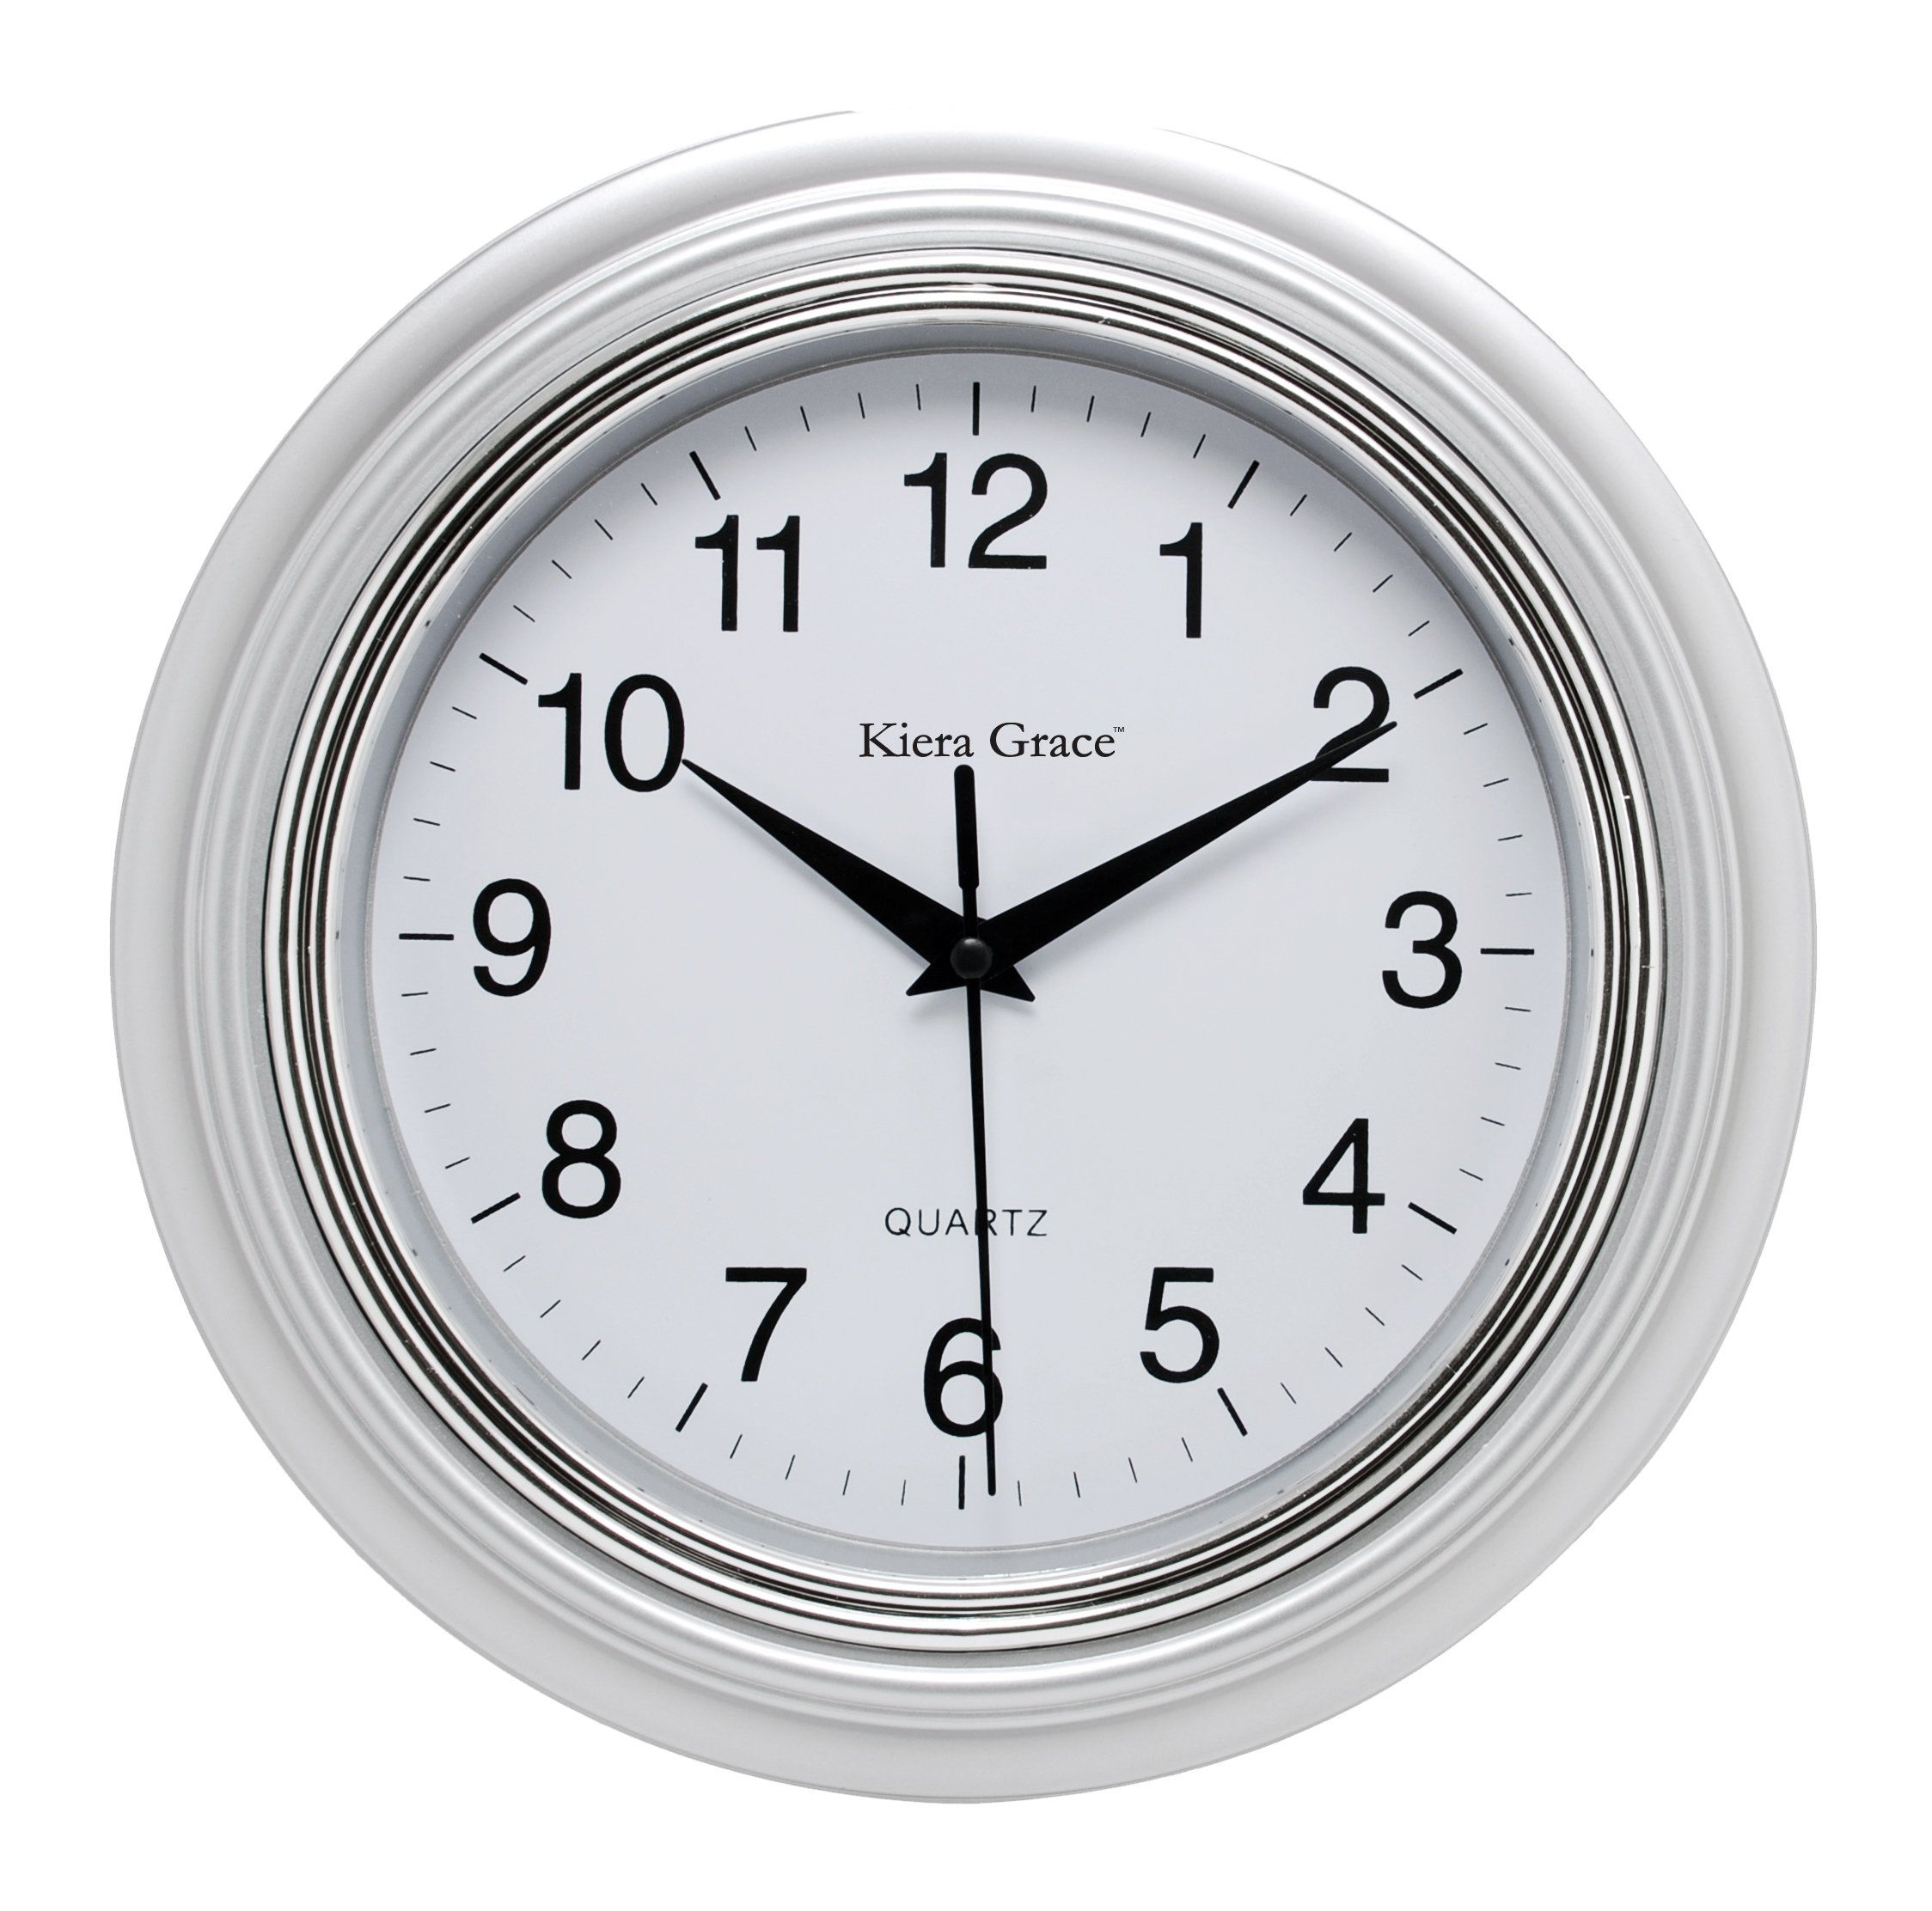 Kieragrace Traditional Wall Clocks 10 Inch Silver In 2020 Wanduhr Wanduhren Uhr